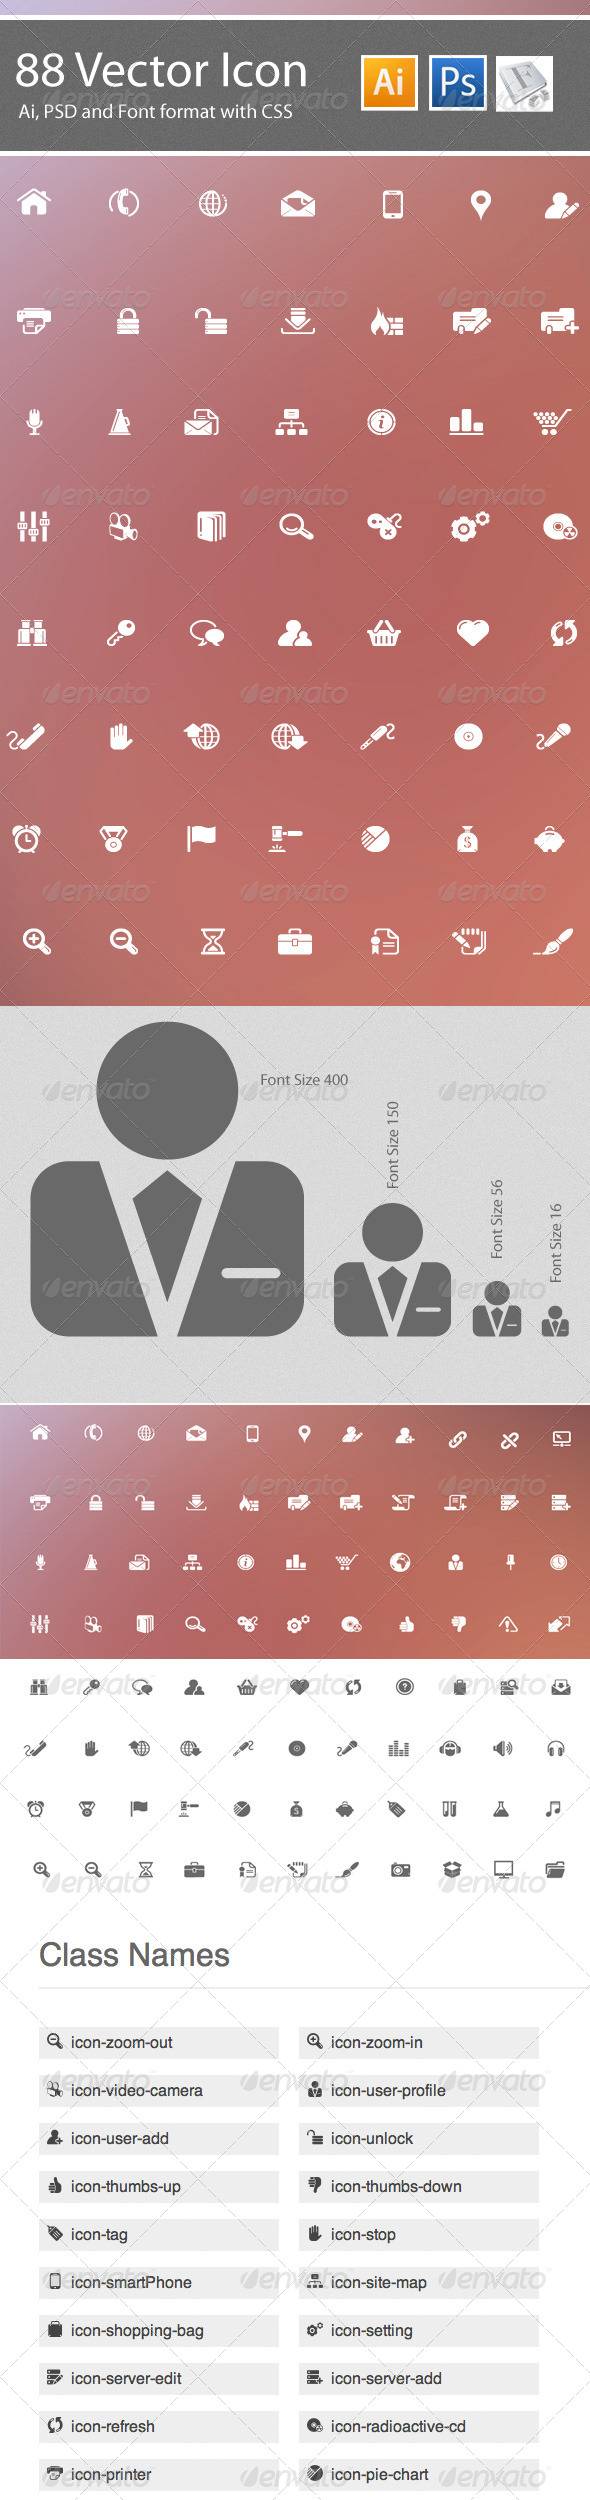 Pin by Wils Hew on Icons Fonts, Thumbs up icon, Icon font